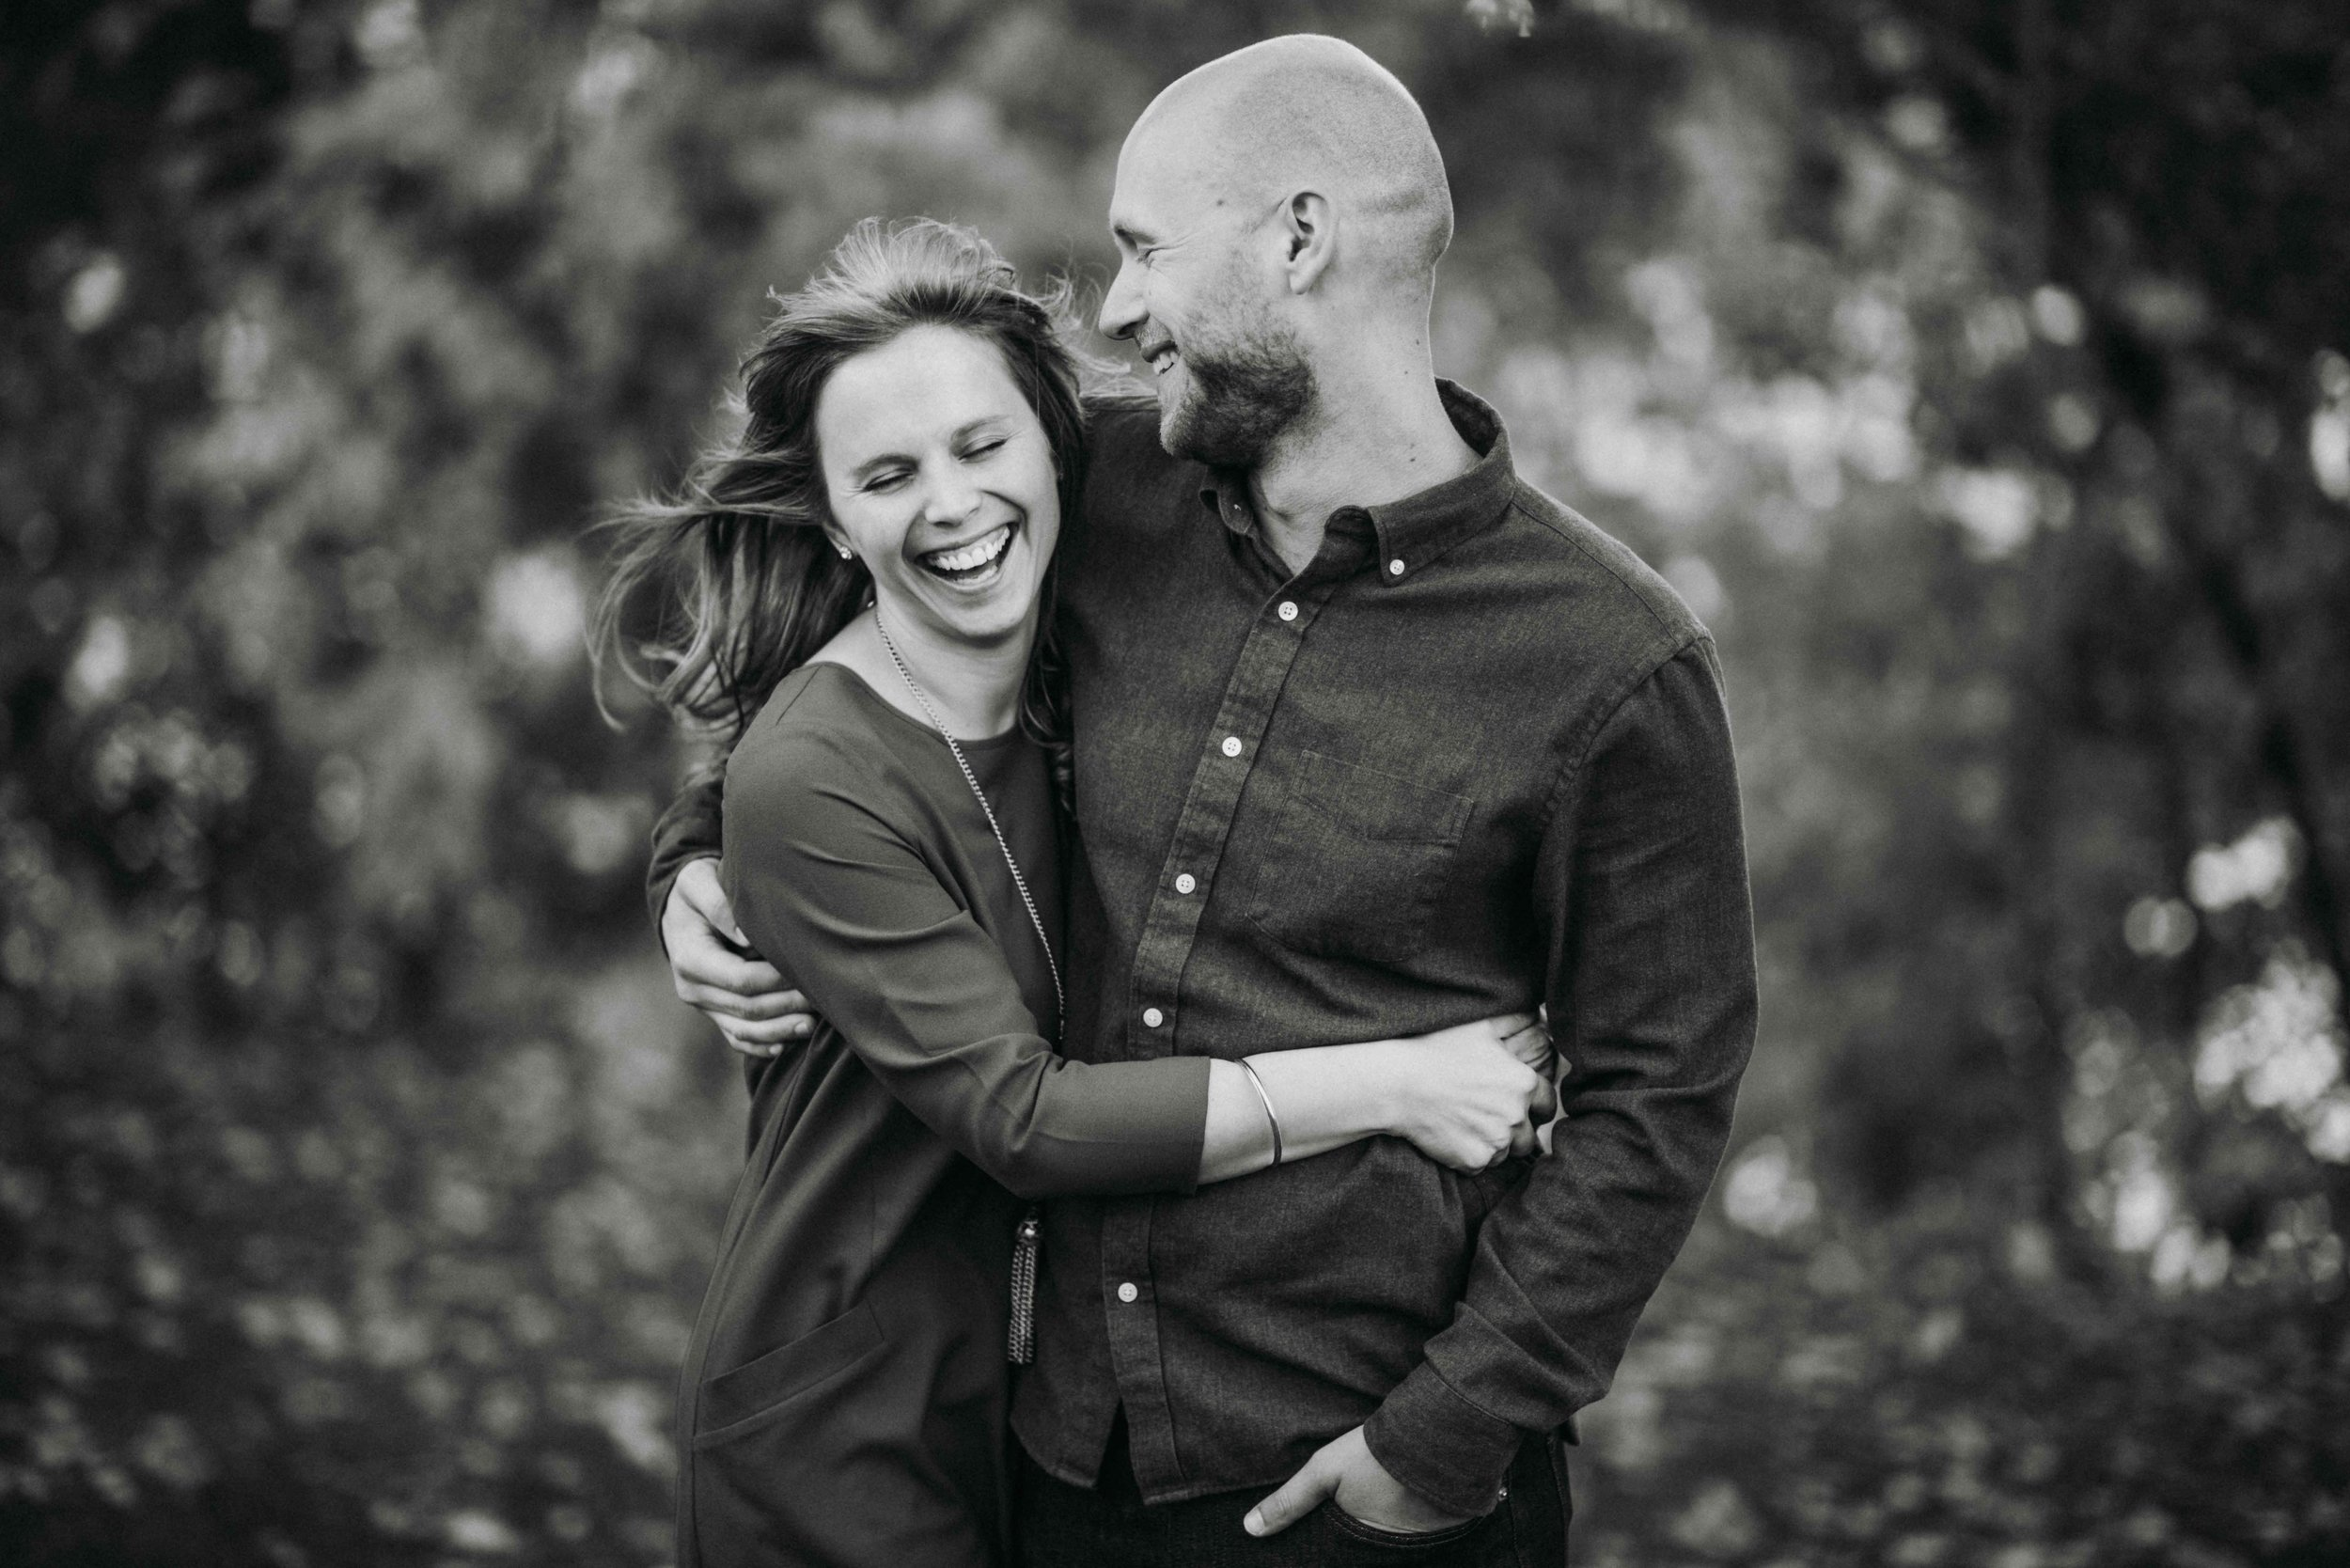 modist_brewing_minneapolis_minnesota_wedding_photography_engagement_session (25 of 32).JPG